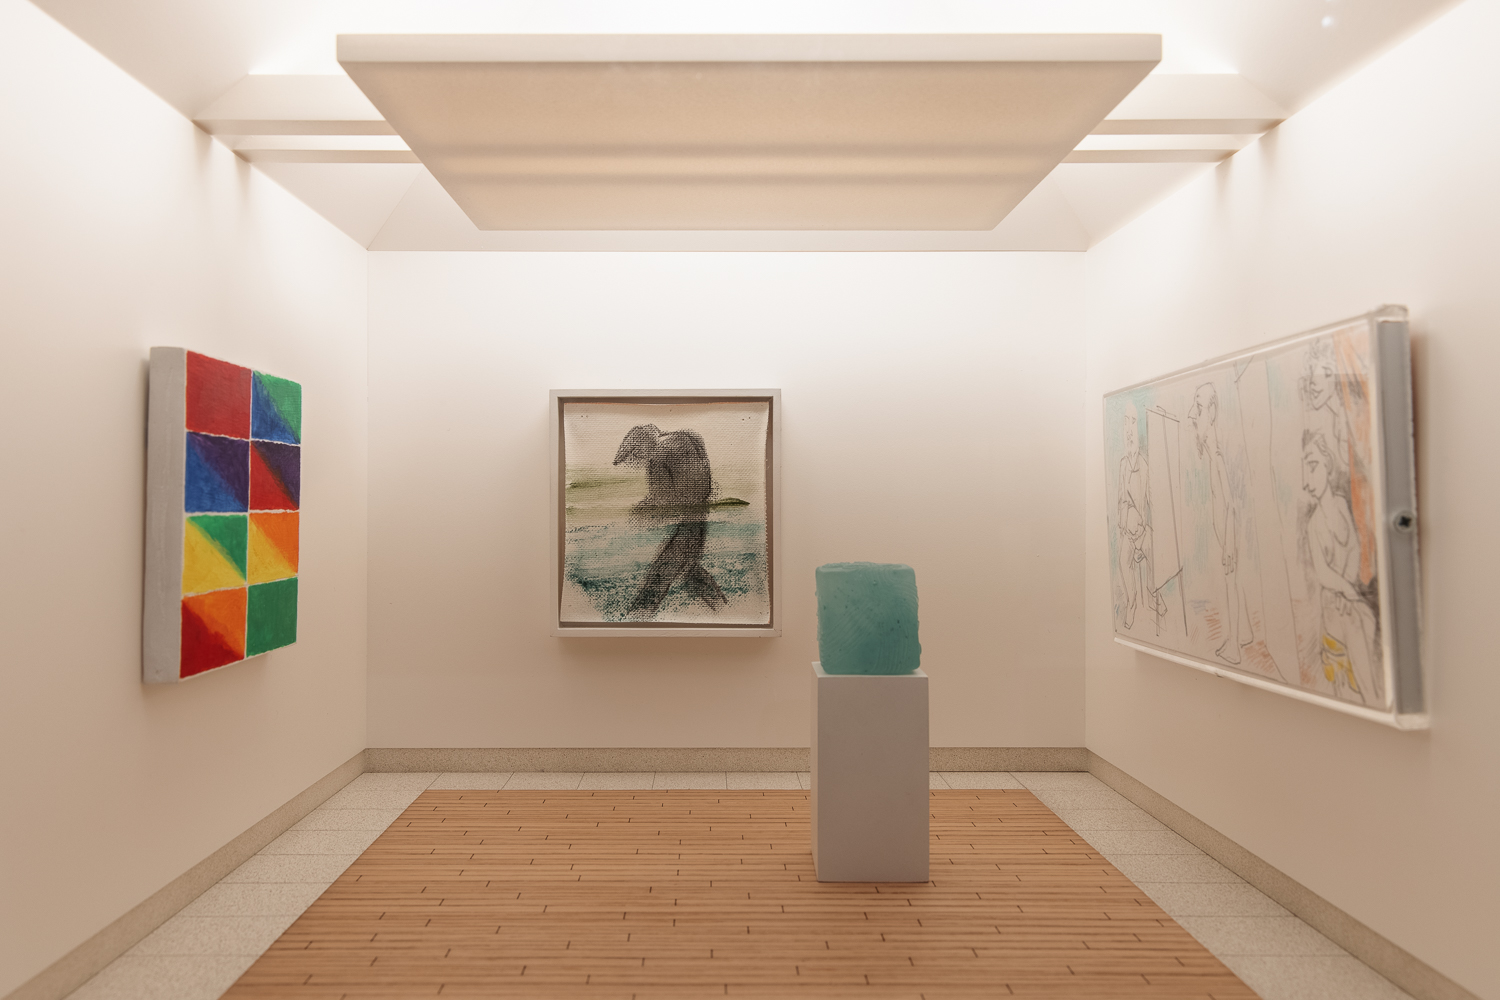 A model art gallery room with white walls, a dropped ceiling and wooden and stone look flooring. On the left hand wall is a painting of eight panels divided into triangles and painted in red, orange, yellow, green and blue. On the central wall is a painting of a silhouette of a man in a flat cap. On the right hand wall is a painting of people peering over their shoulders at each others canvases. In the centre right is a plinth with a mint green glass cube.